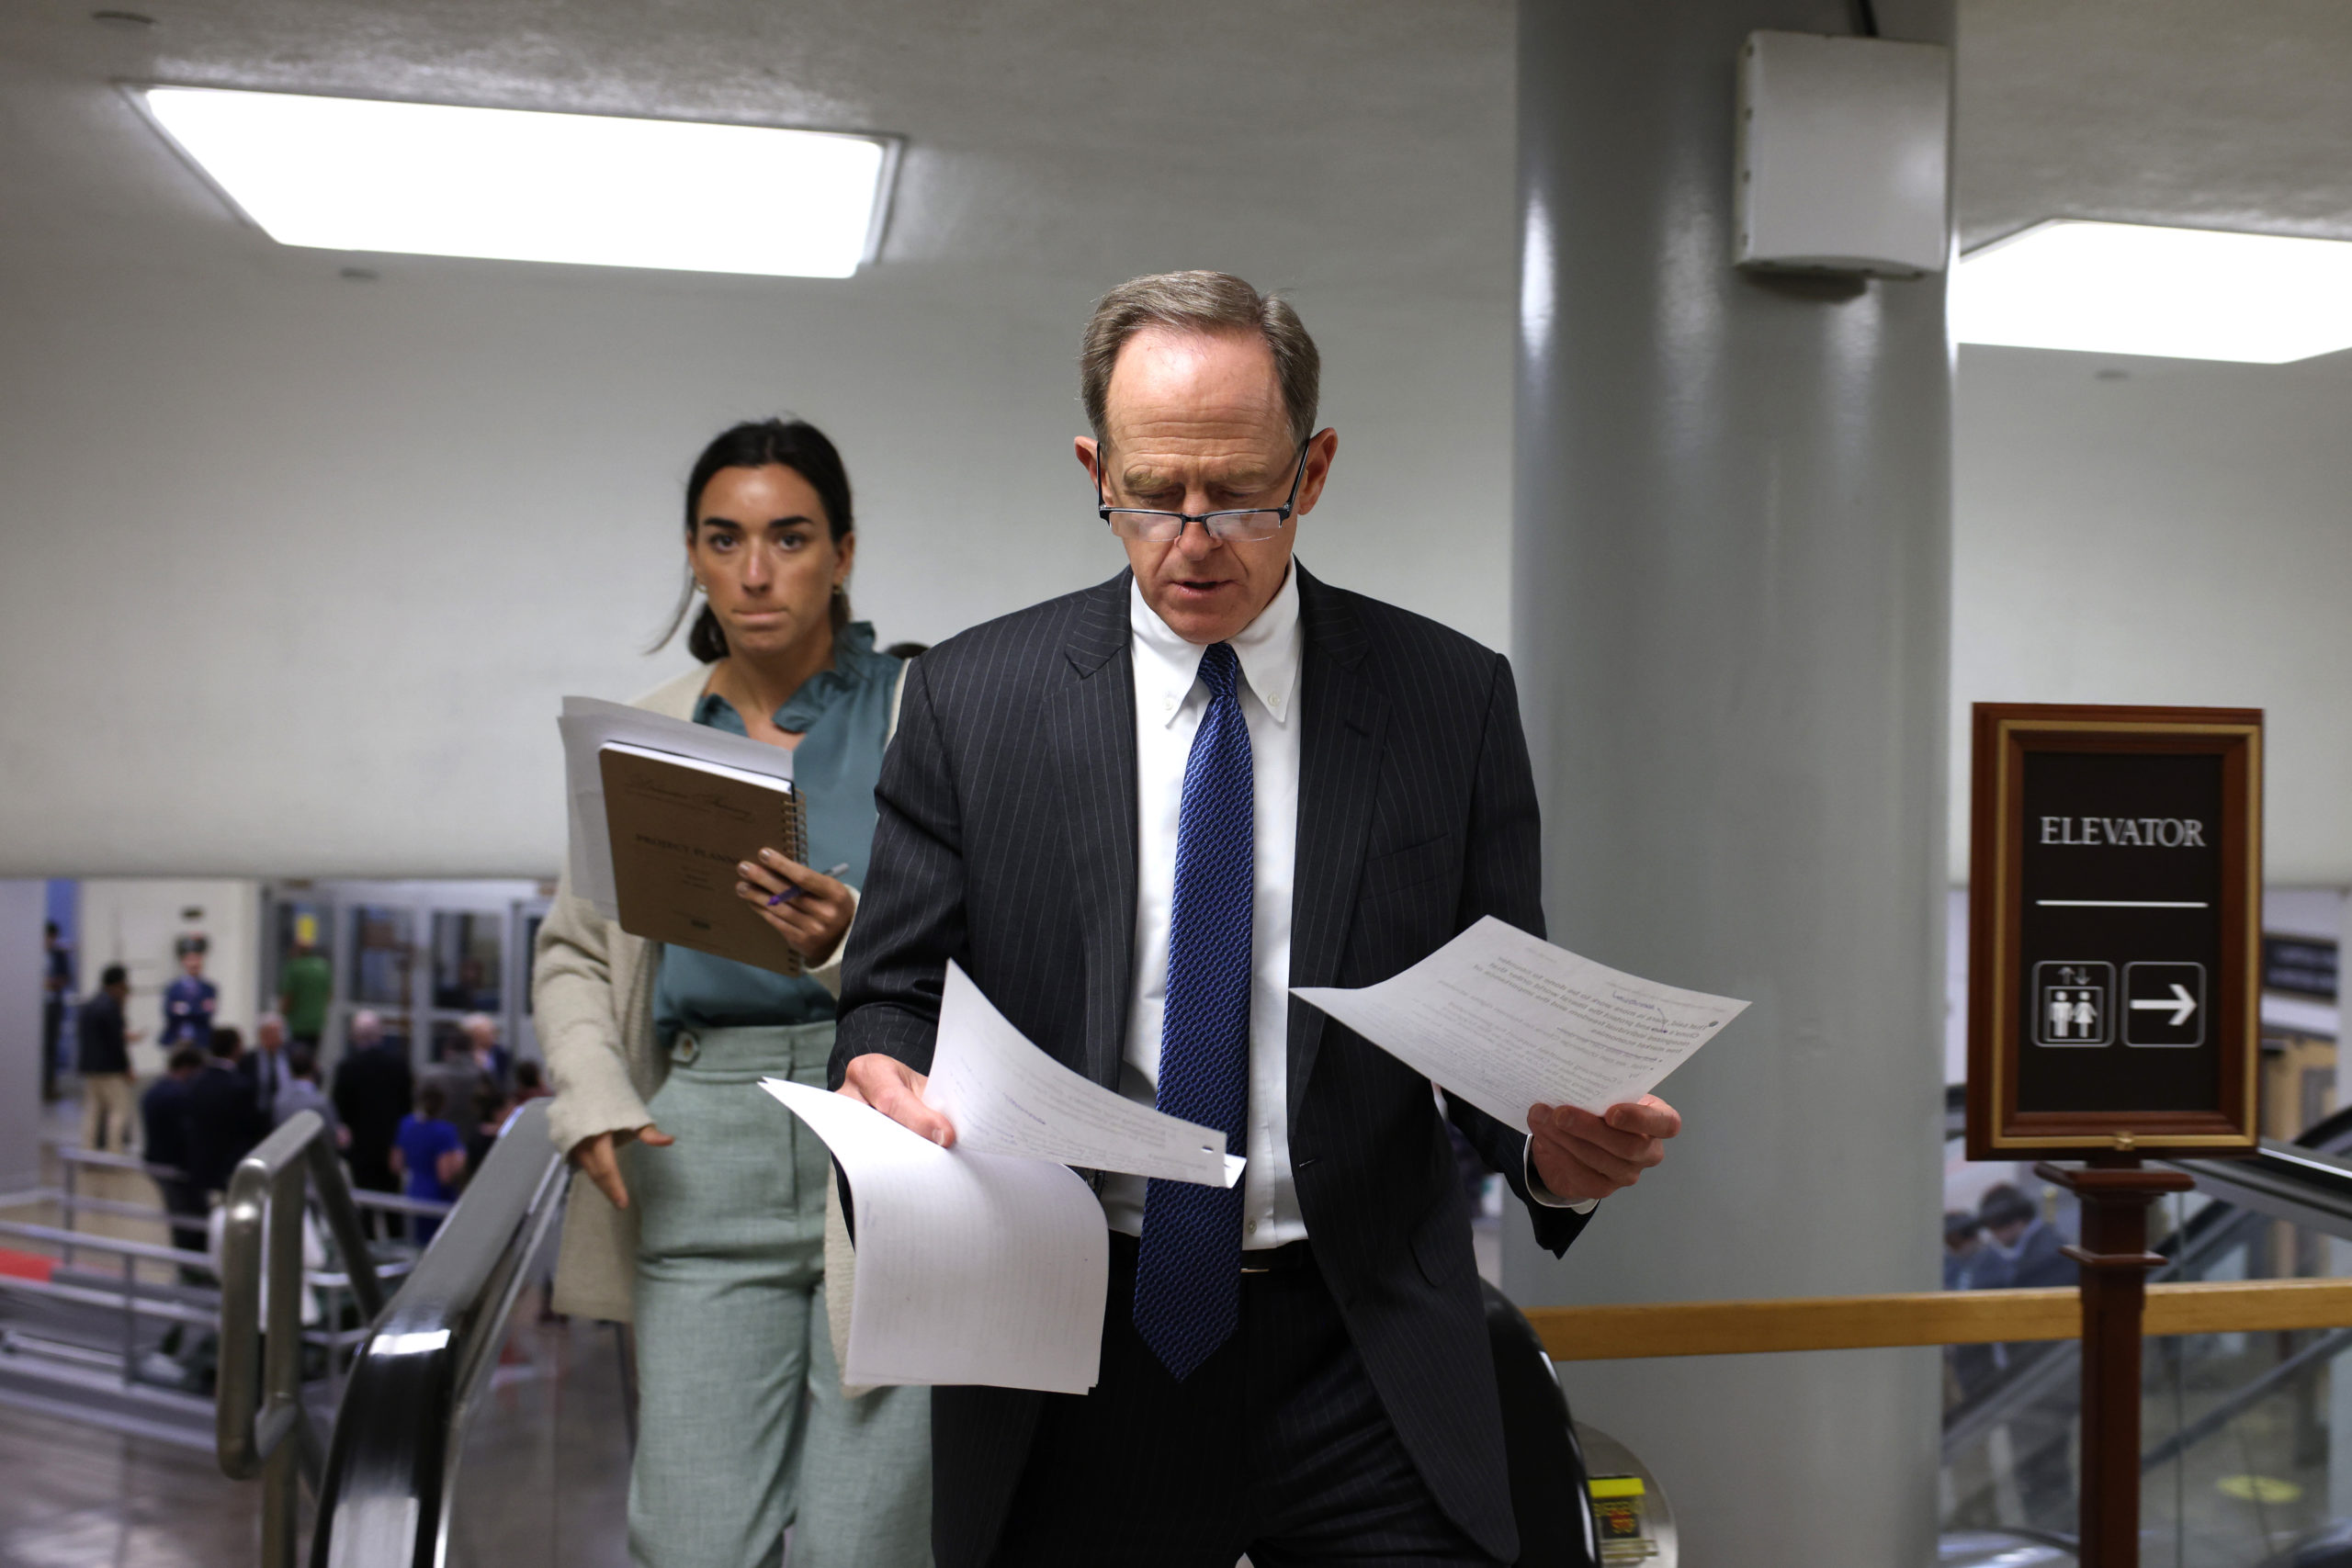 Republican Sen. Pat Toomey looks through documents as he walks on Tuesday. (Anna Moneymaker/Getty Images)